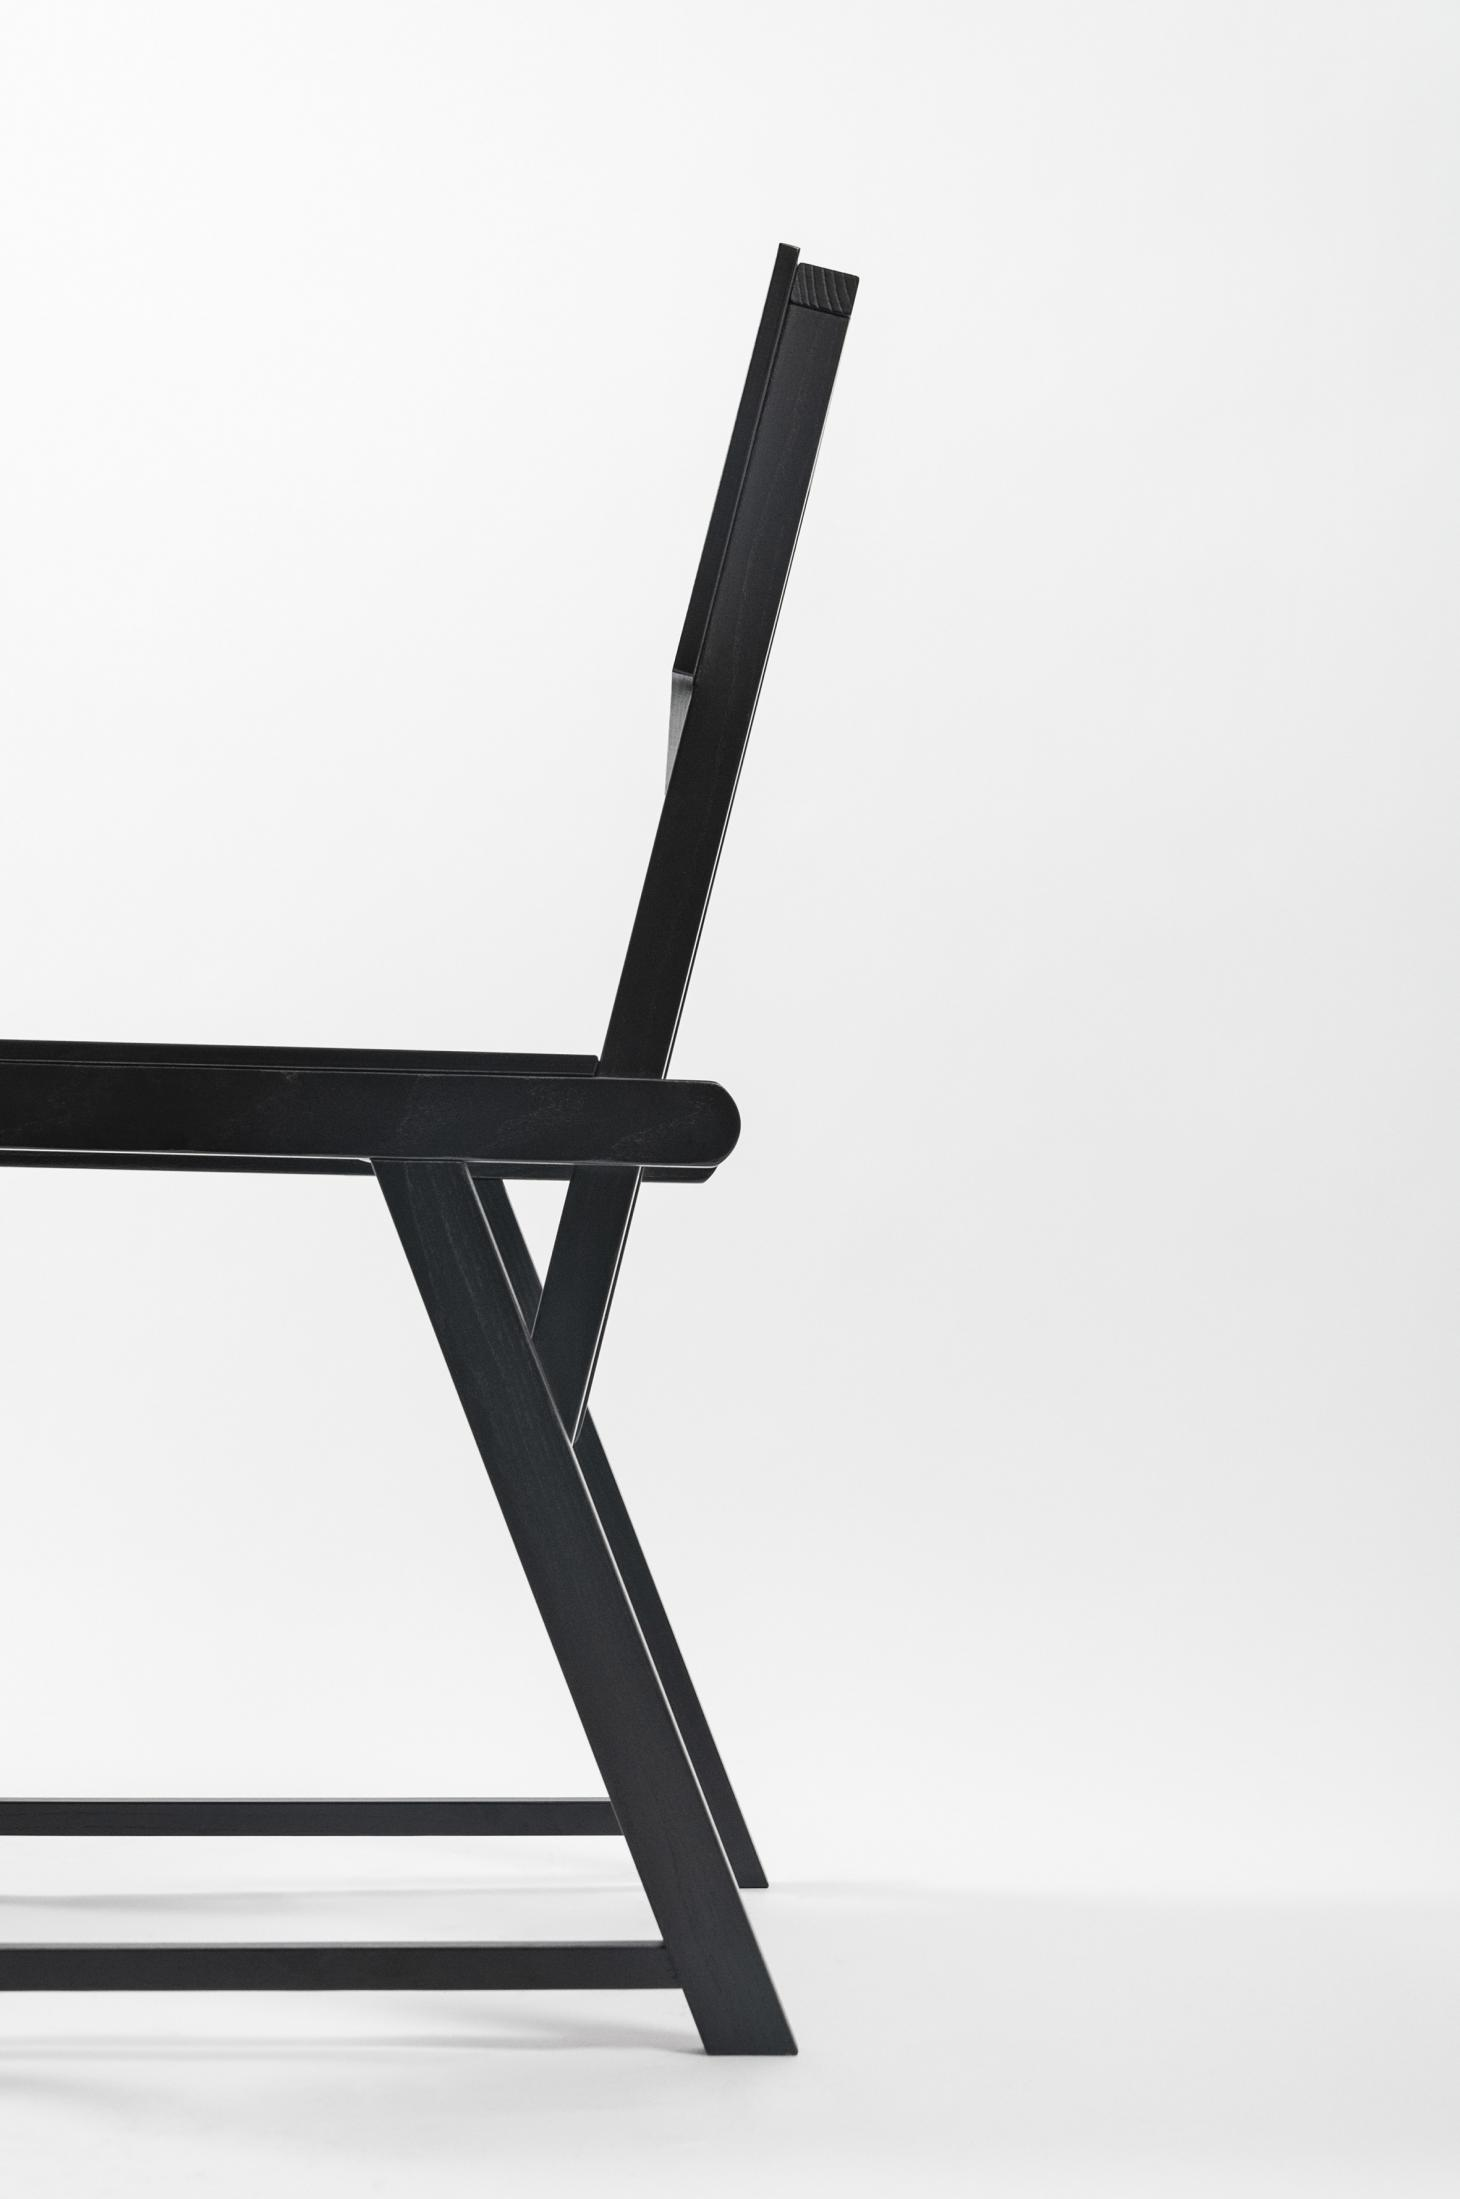 Side view of black wooden chair